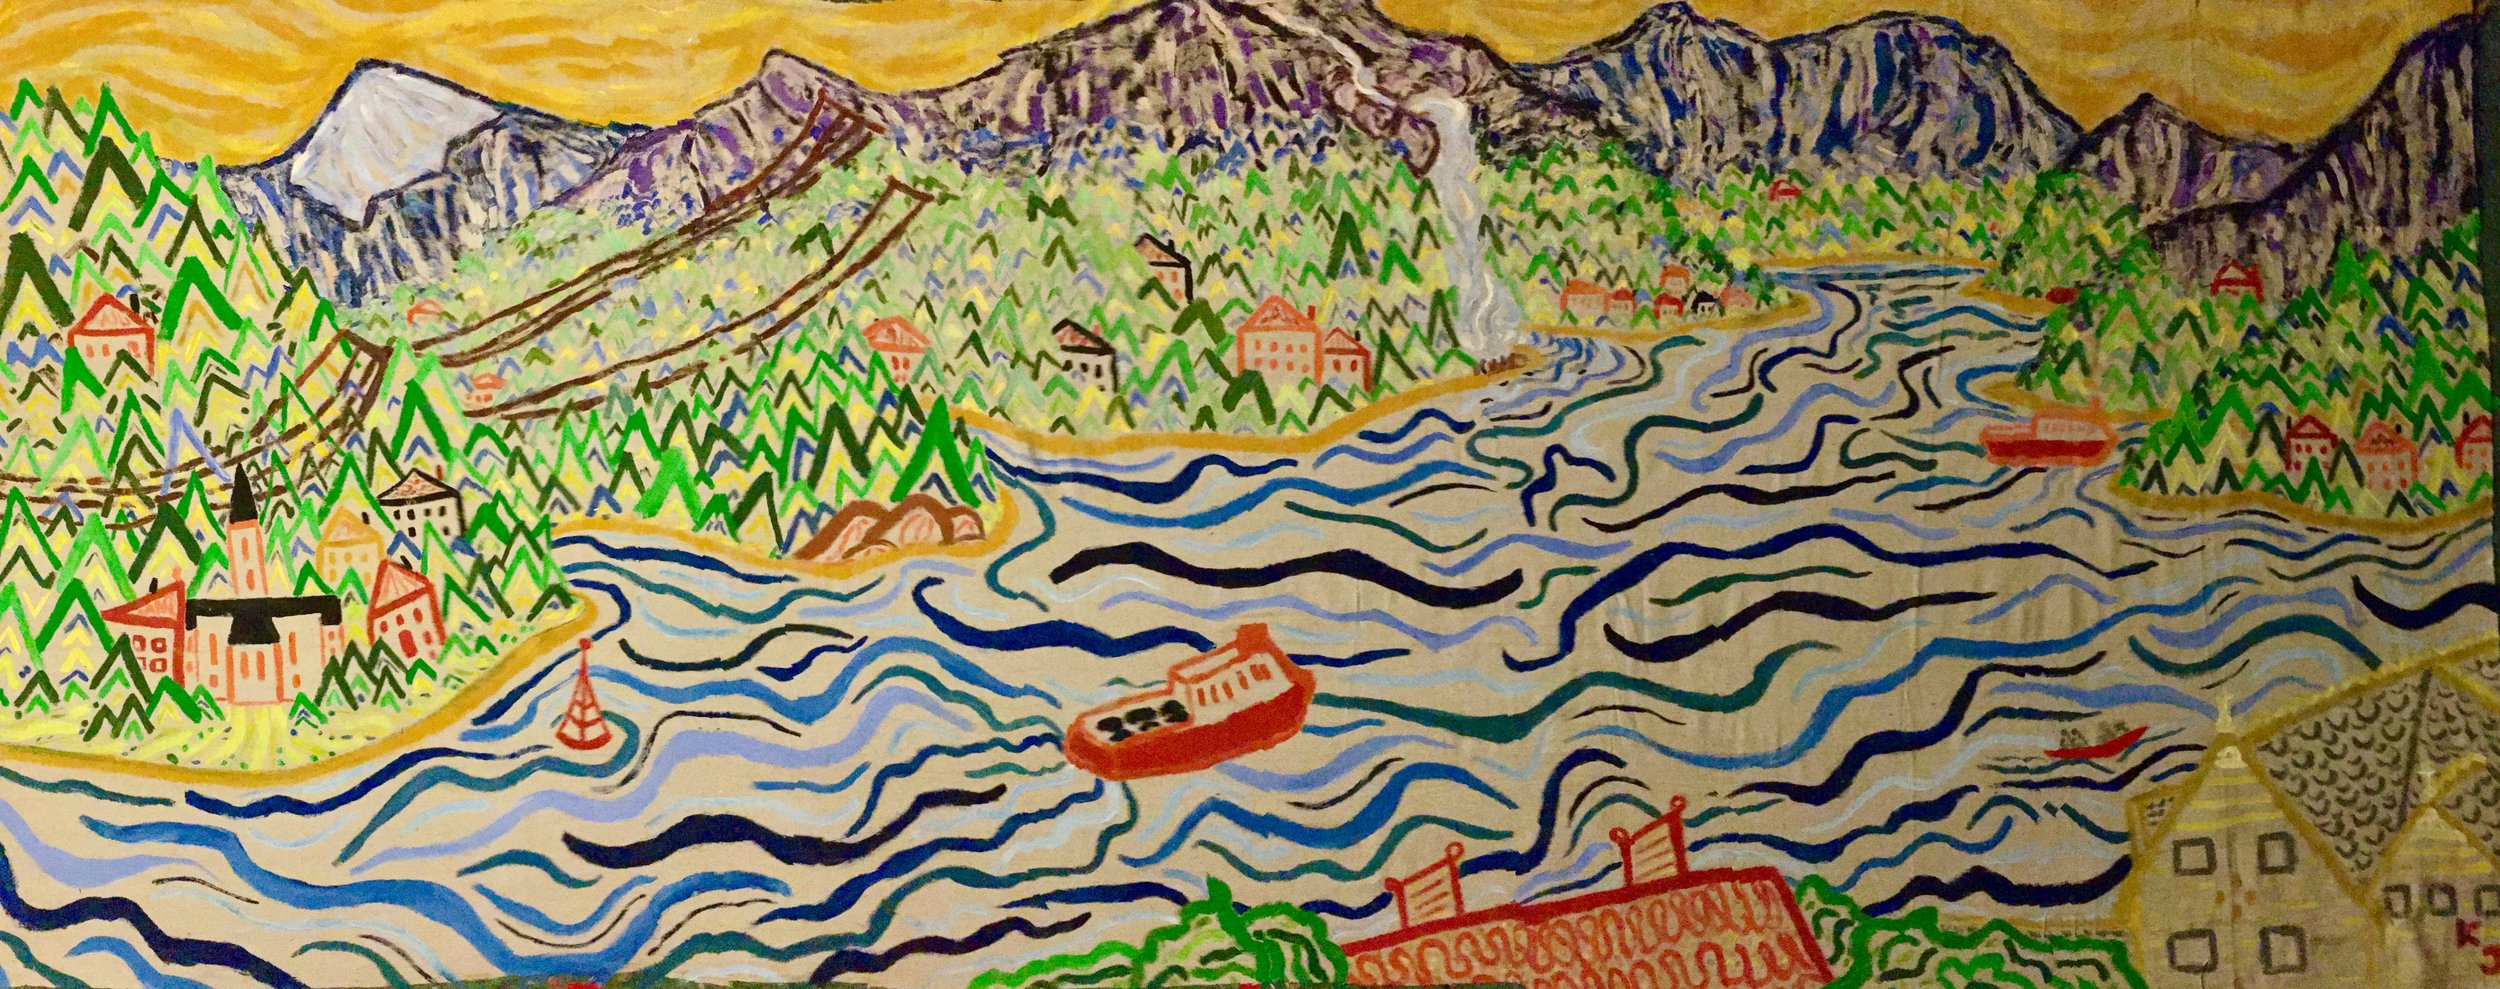 Finished painting - Balestrand, Norway